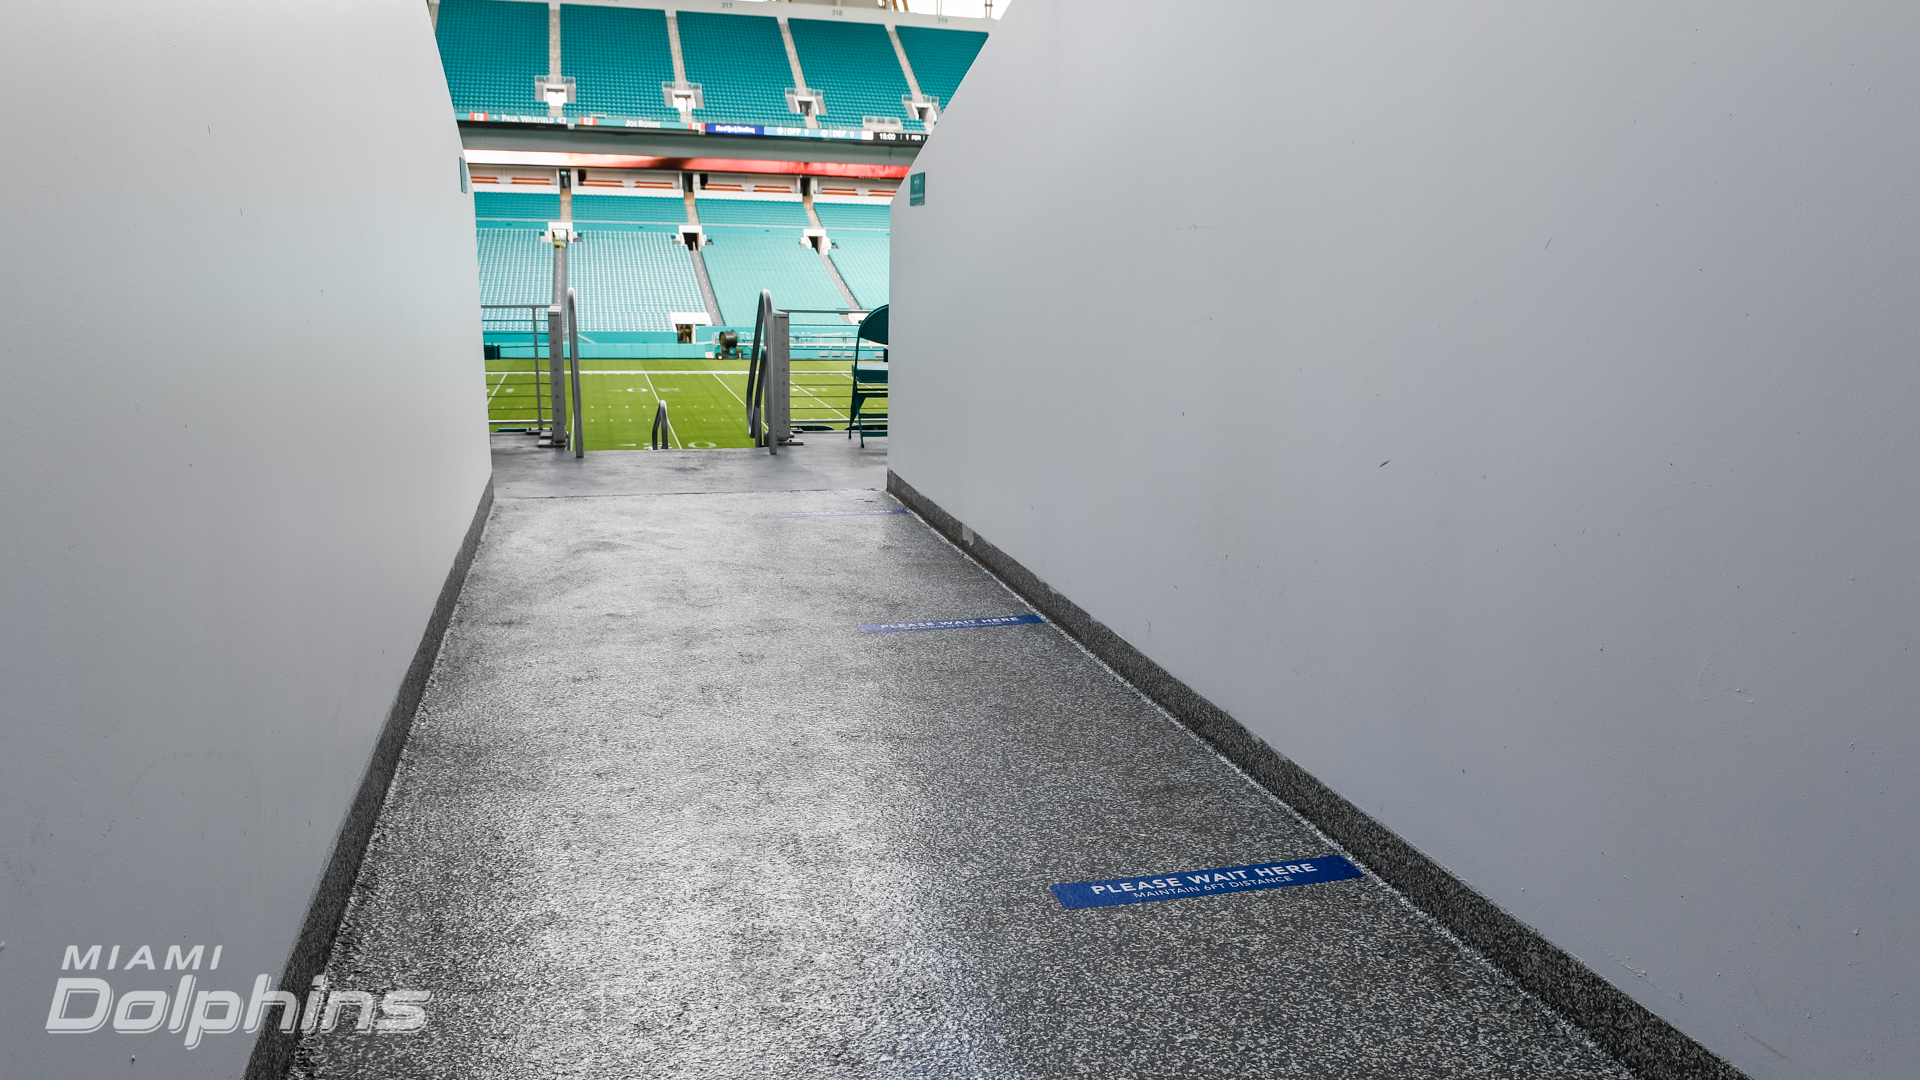 Socially-Distanced Markers at Hard Rock Stadium{ }(Miami Dolphins)